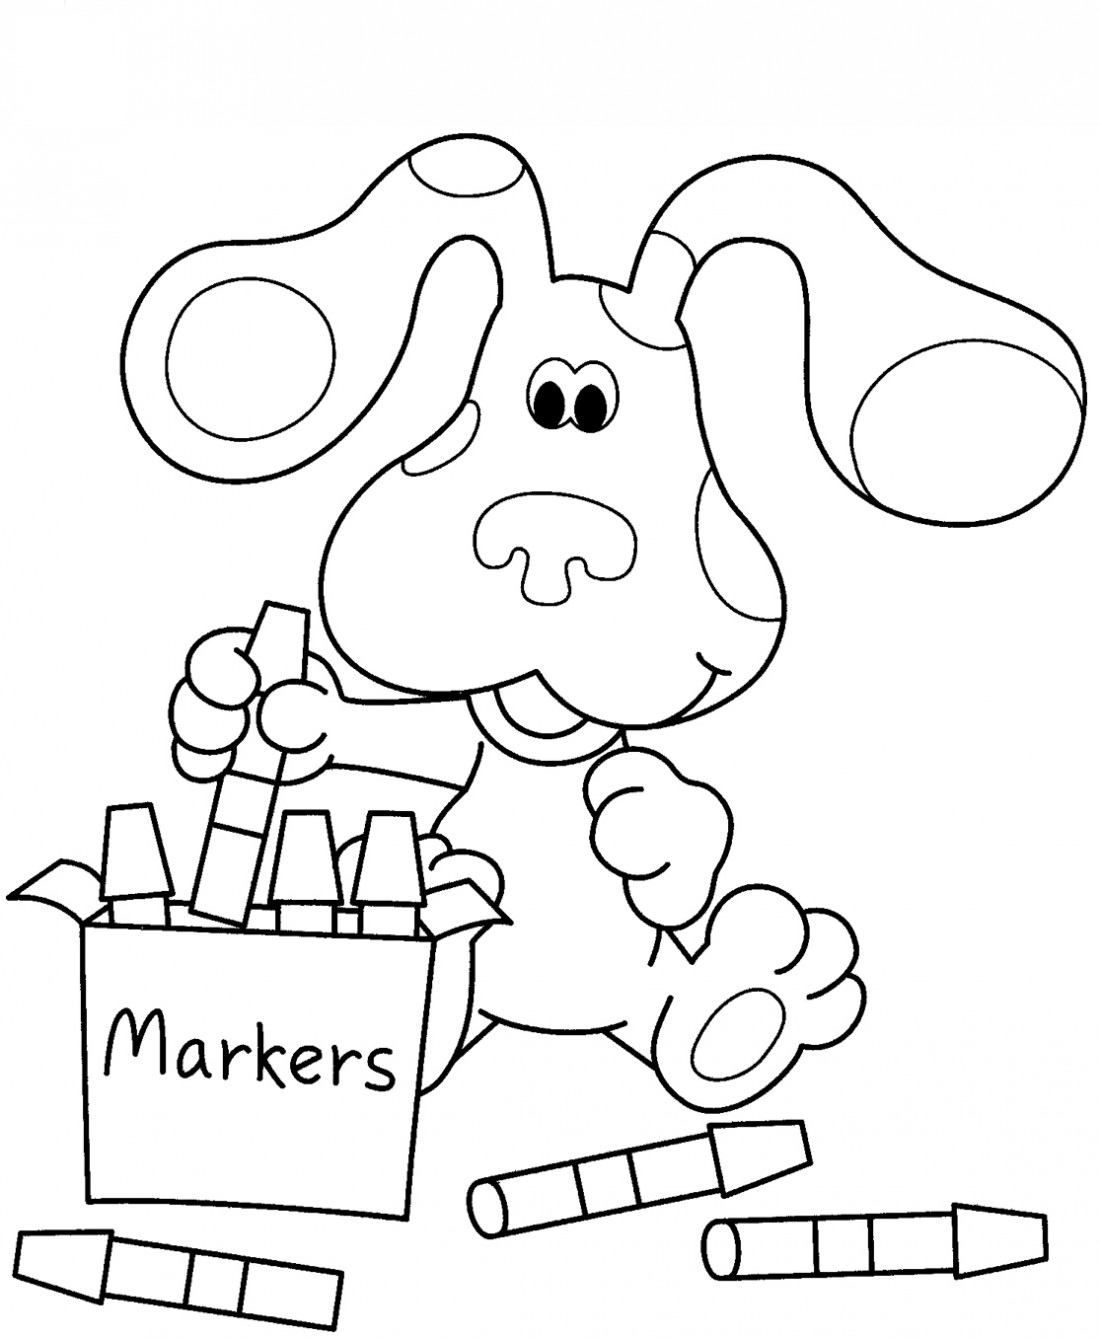 Crayons Coloring Pages Printable - Coloring Pages - Coloring Home